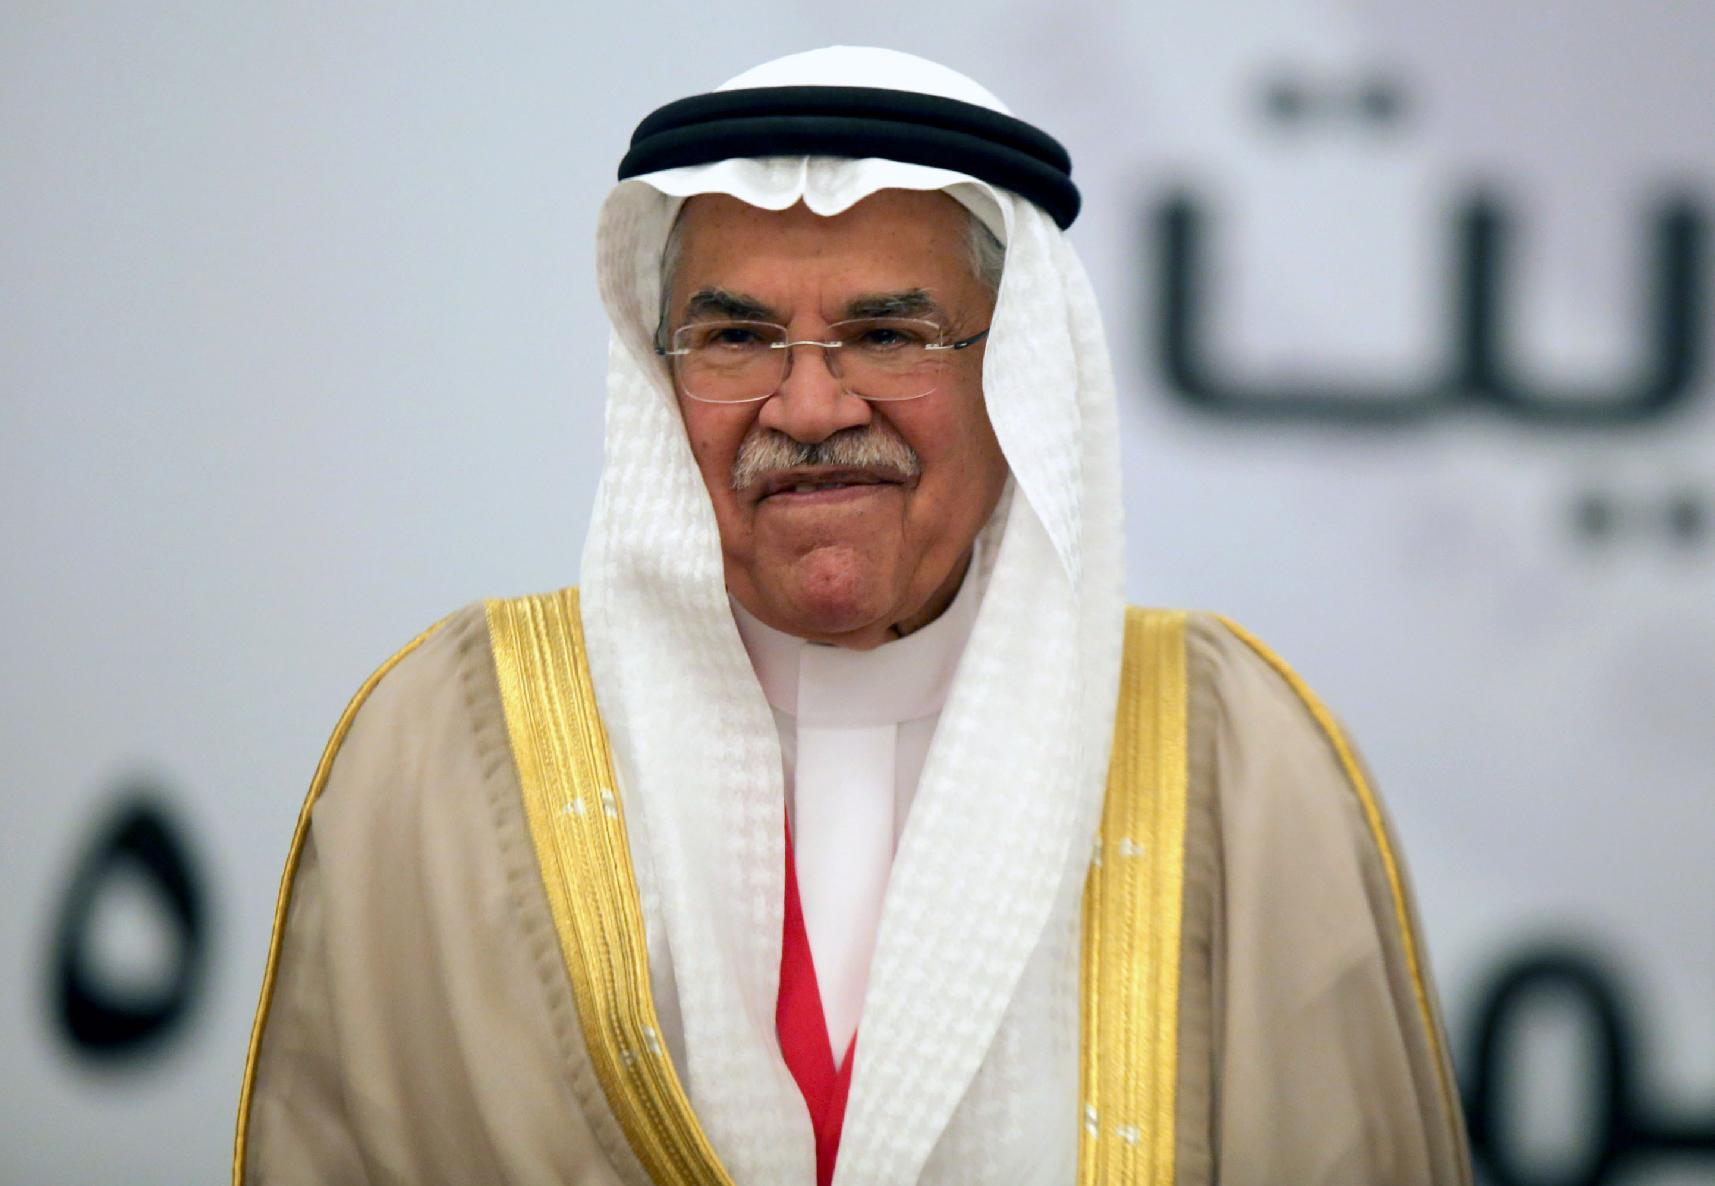 Saudi oil minister Ali Al-Naimi attends the Gulf Cooperation Council (GCC) oil ministers meeting in Kuwait city, on September 11, 2014 (AFP Photo/Yasser al-Zayyat)